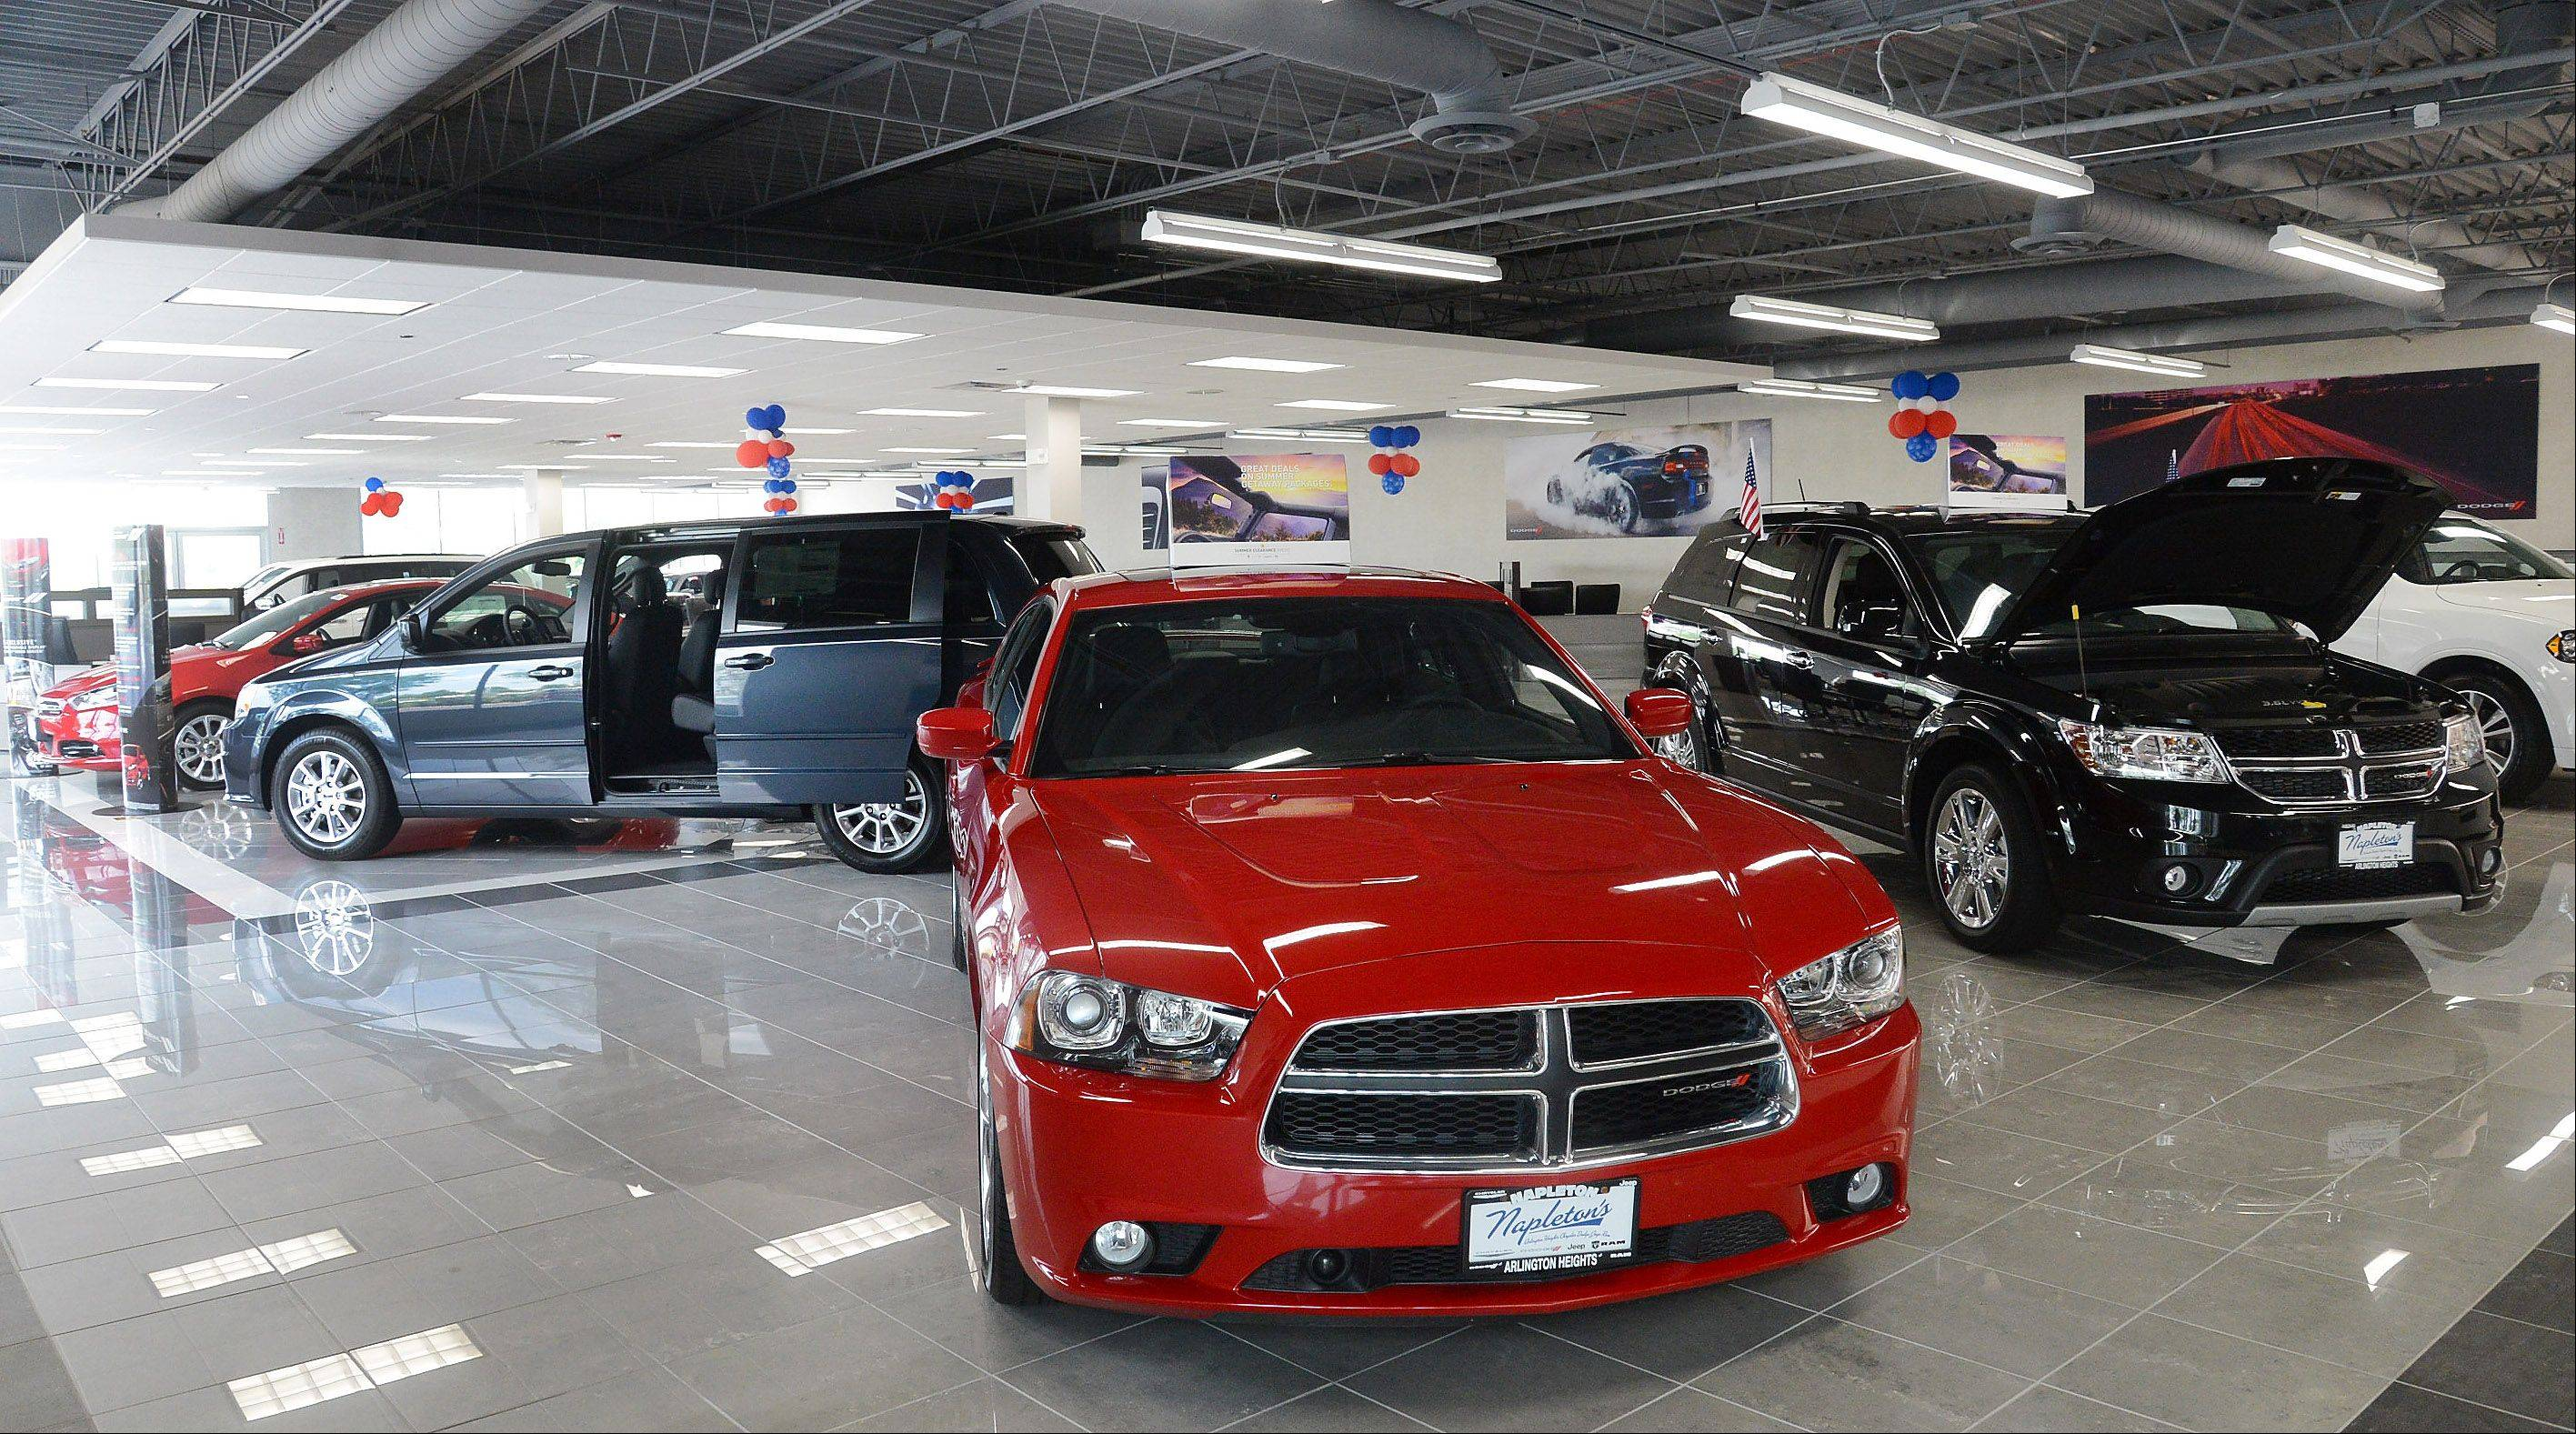 Napleton Chrysler Dodge Jeep RAM relocated to Arlington Heights in May and celebrated a grand opening of the new dealership on Saturday.